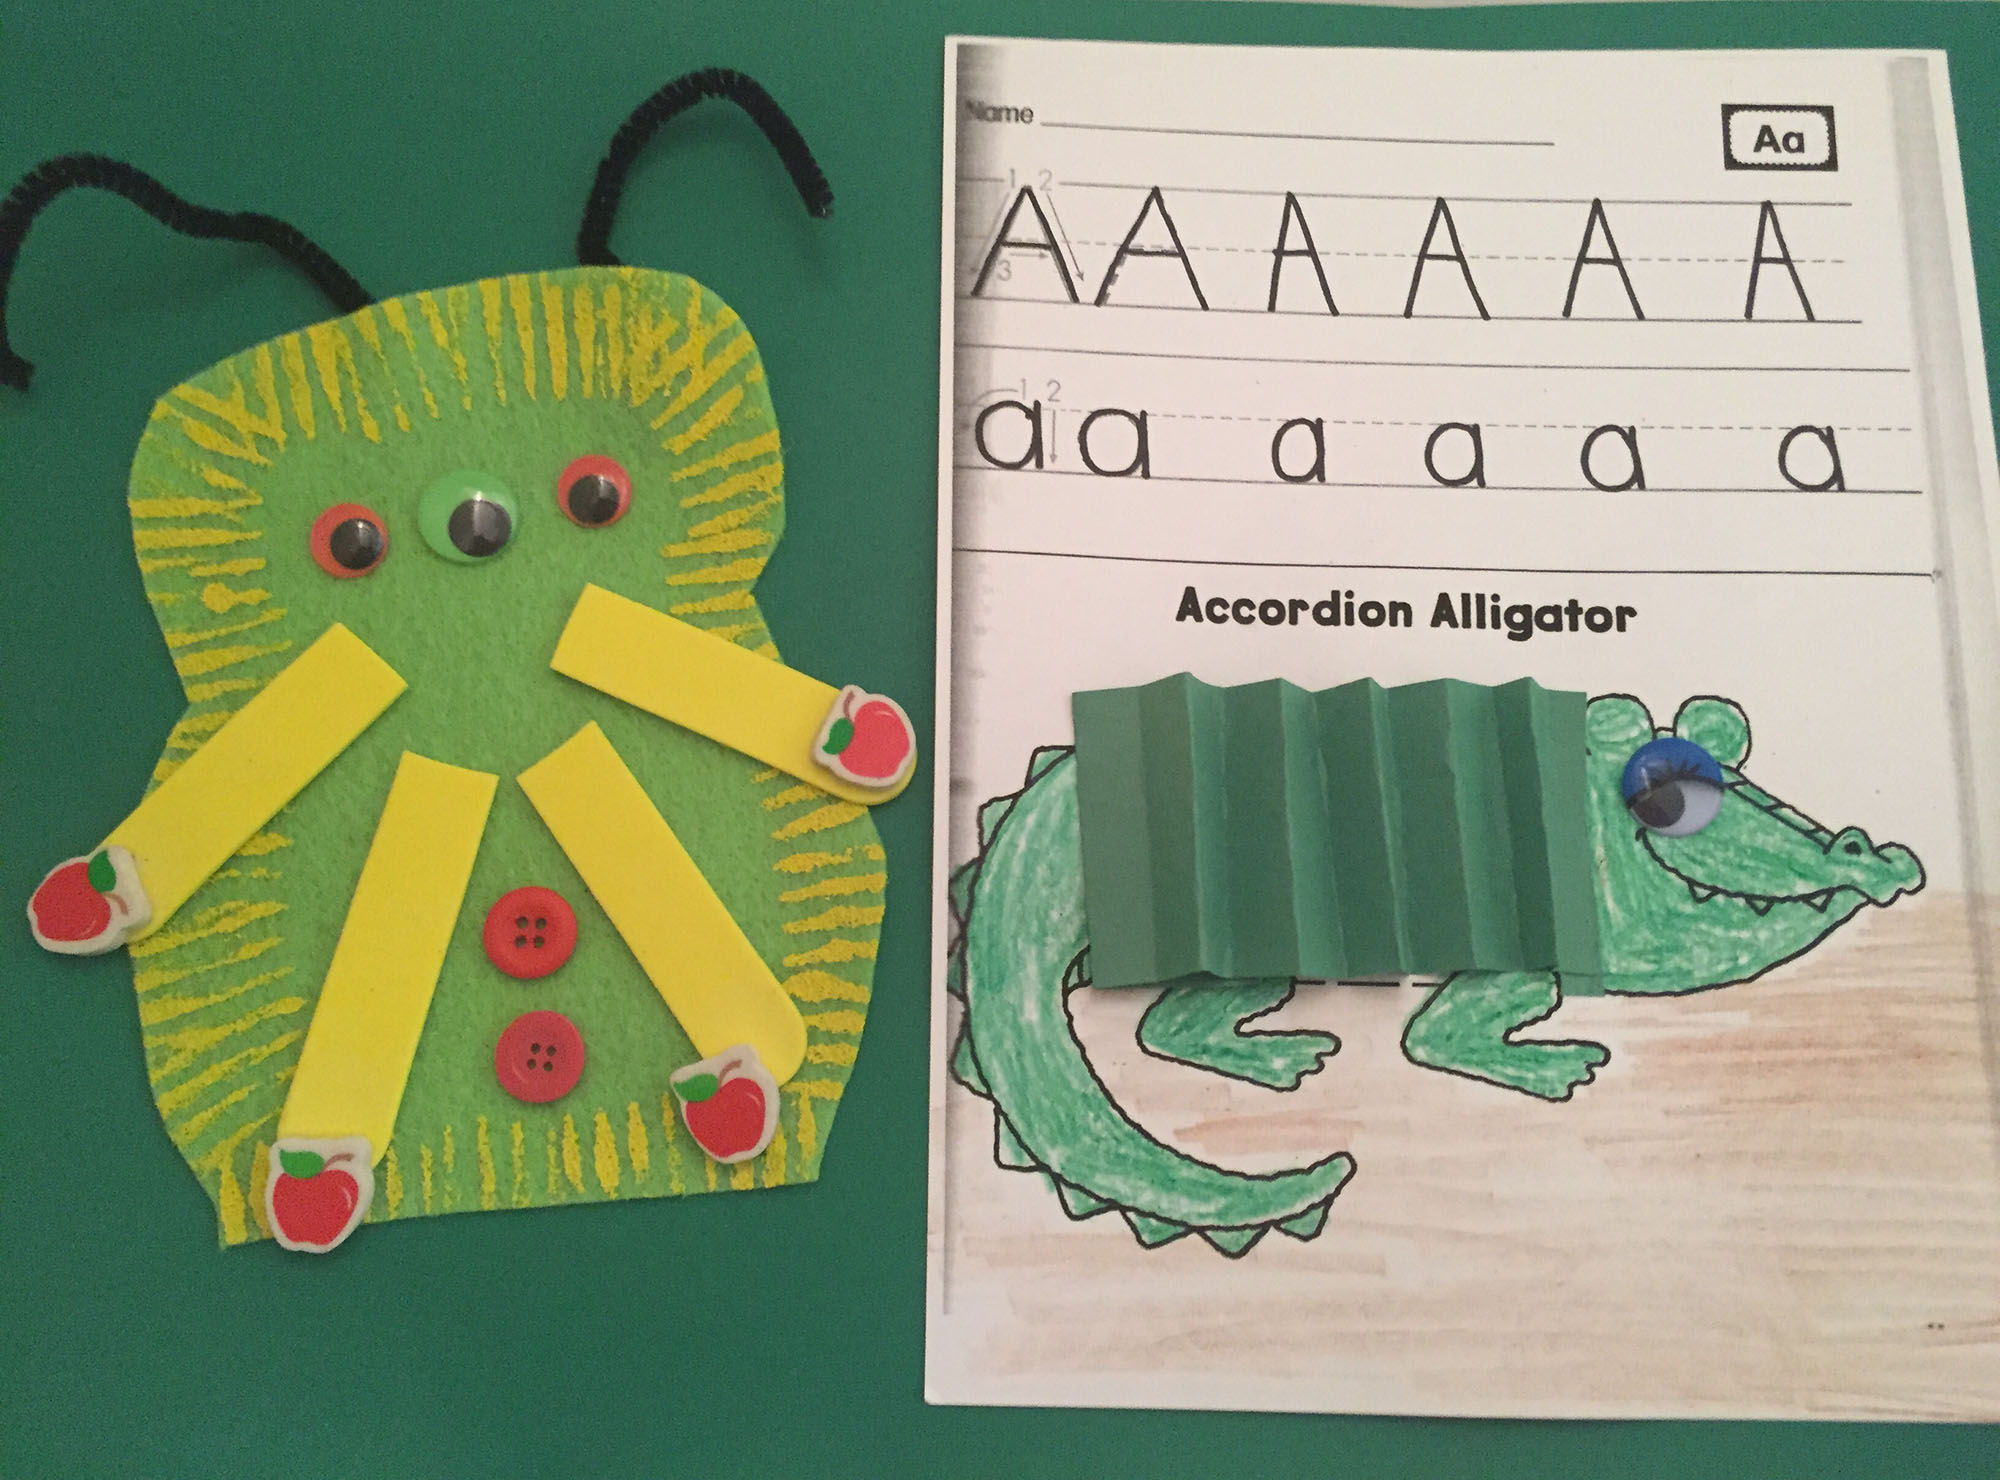 Alien Appliqué and Accordion Alligator